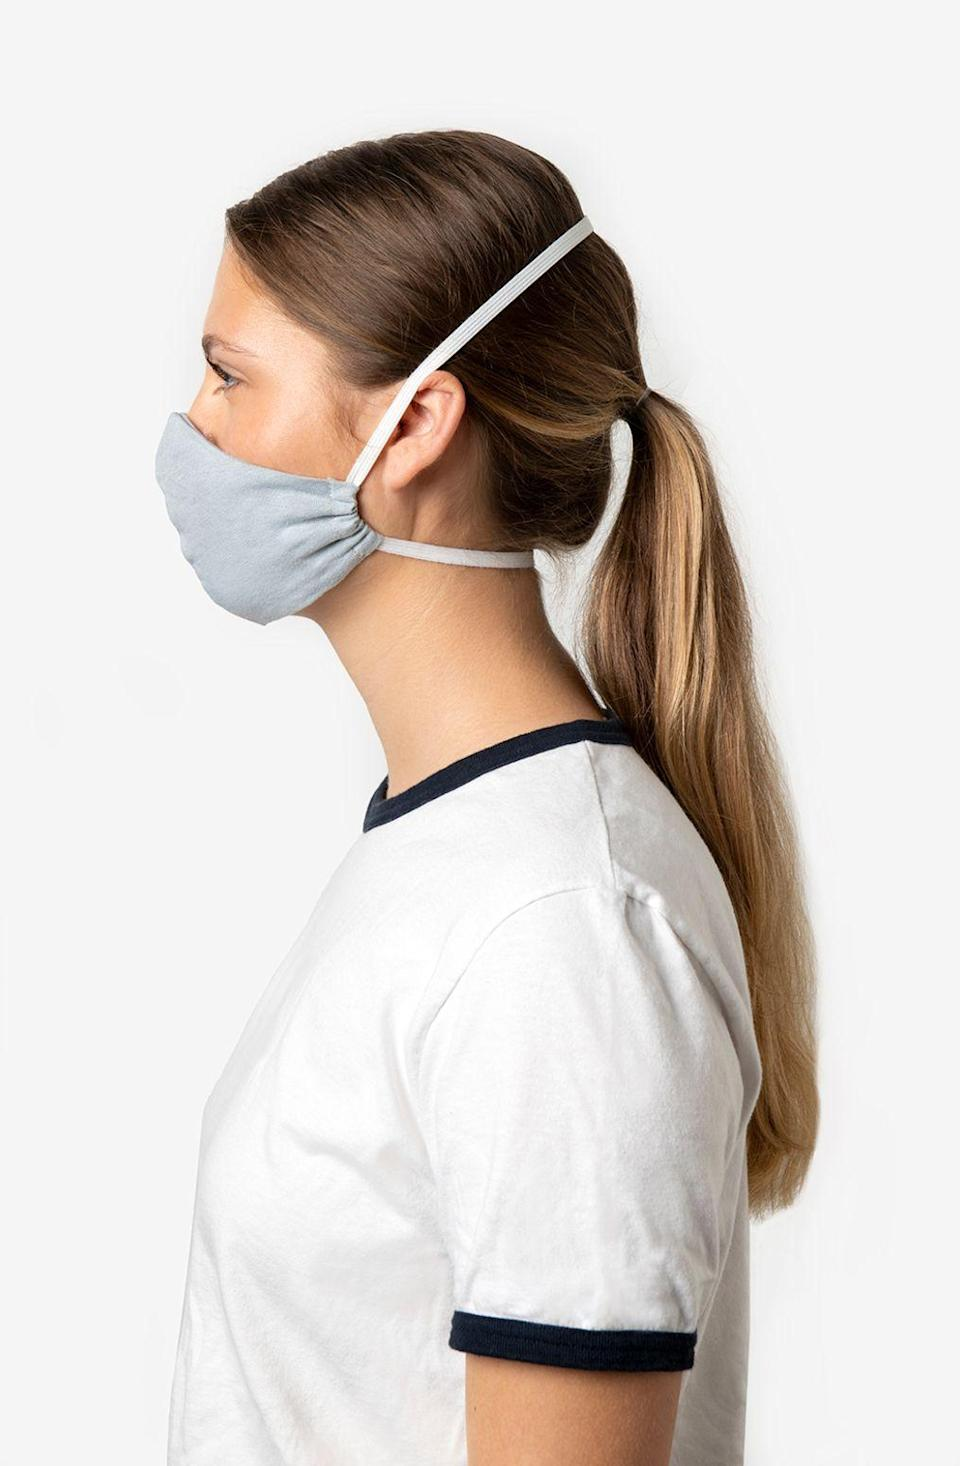 """<p><strong>Alabama Chanin</strong></p><p>alabamachanin.com</p><p><strong>$15.50</strong></p><p><a href=""""https://alabamachanin.com/products/reusable-non-medical-grade-face-masks"""" rel=""""nofollow noopener"""" target=""""_blank"""" data-ylk=""""slk:Shop Now"""" class=""""link rapid-noclick-resp"""">Shop Now</a></p><p>The Florence, AL brand is also offering <a href=""""https://journal.alabamachanin.com/2020/04/make-one-buy-one-donate-one-wear-one/"""" rel=""""nofollow noopener"""" target=""""_blank"""" data-ylk=""""slk:online tutorials"""" class=""""link rapid-noclick-resp"""">online tutorials</a> on making DIY masks. </p>"""